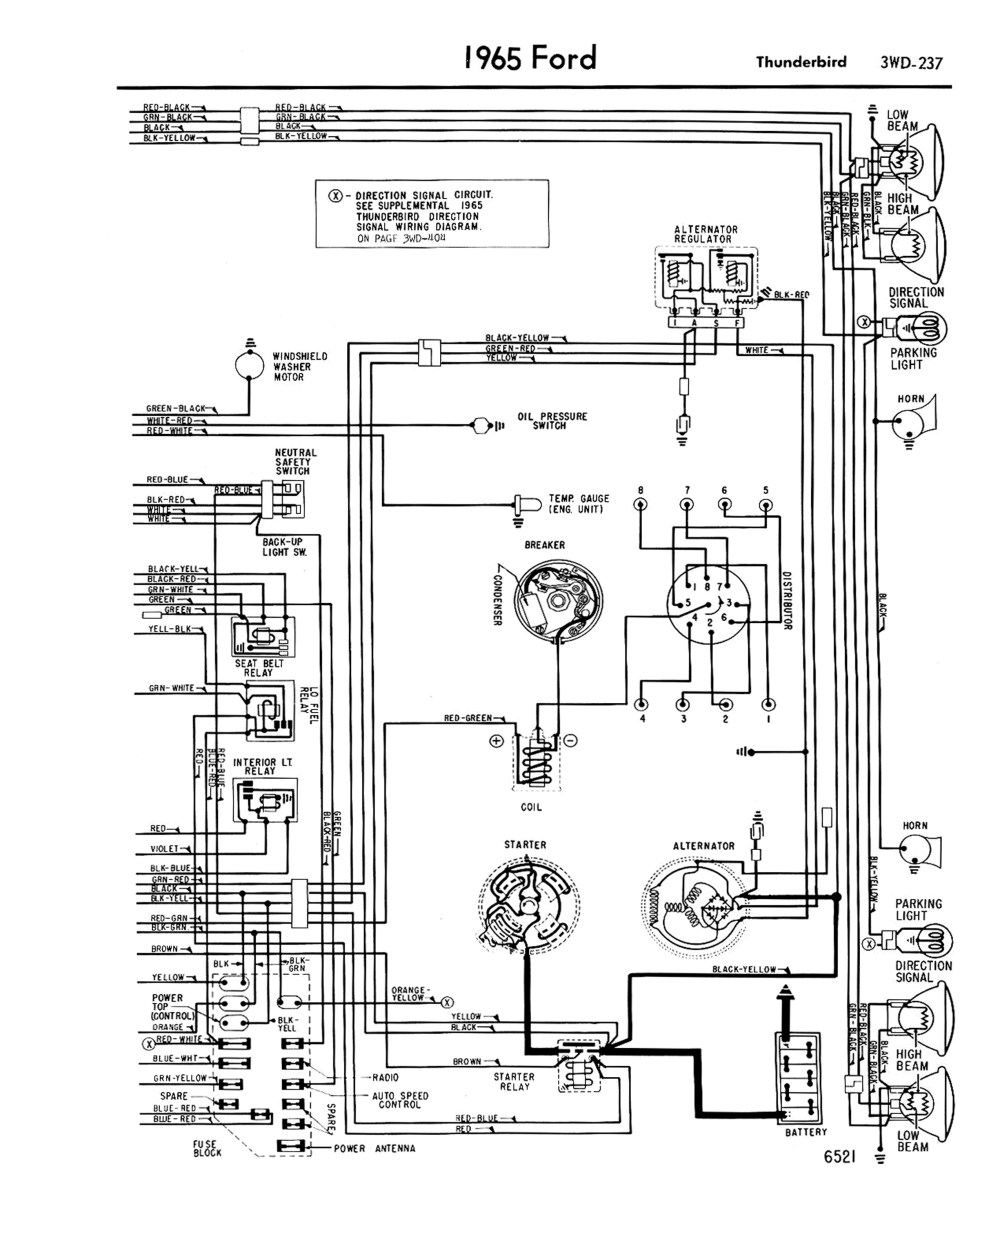 medium resolution of 1965 ford t bird wiring opinions about wiring diagram u2022 rh voterid co 1965 ford thunderbird